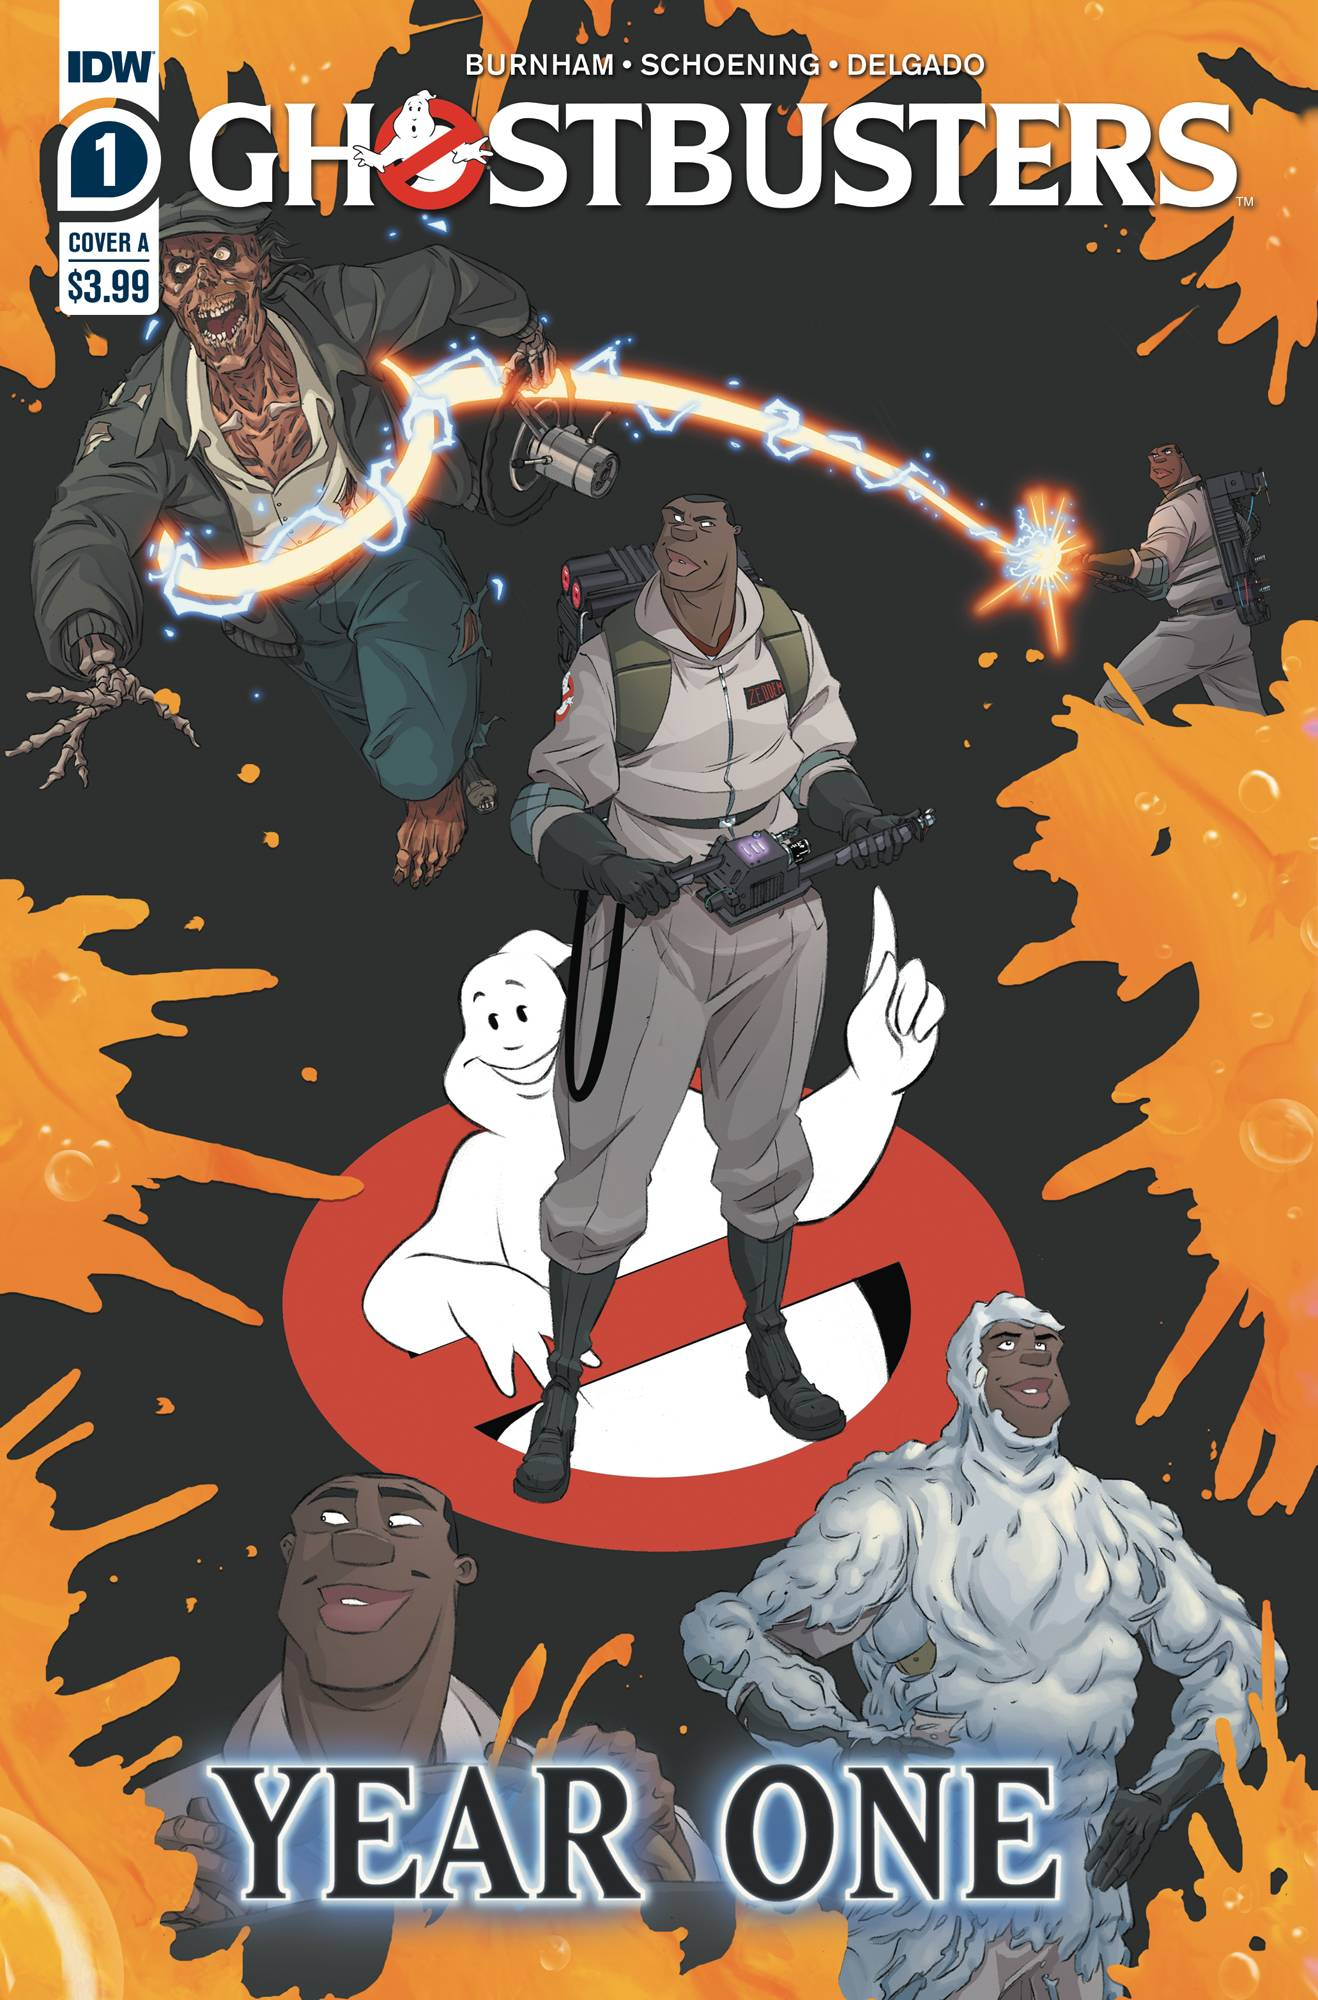 GHOSTBUSTERS YEAR ONE #1 (OF 4)